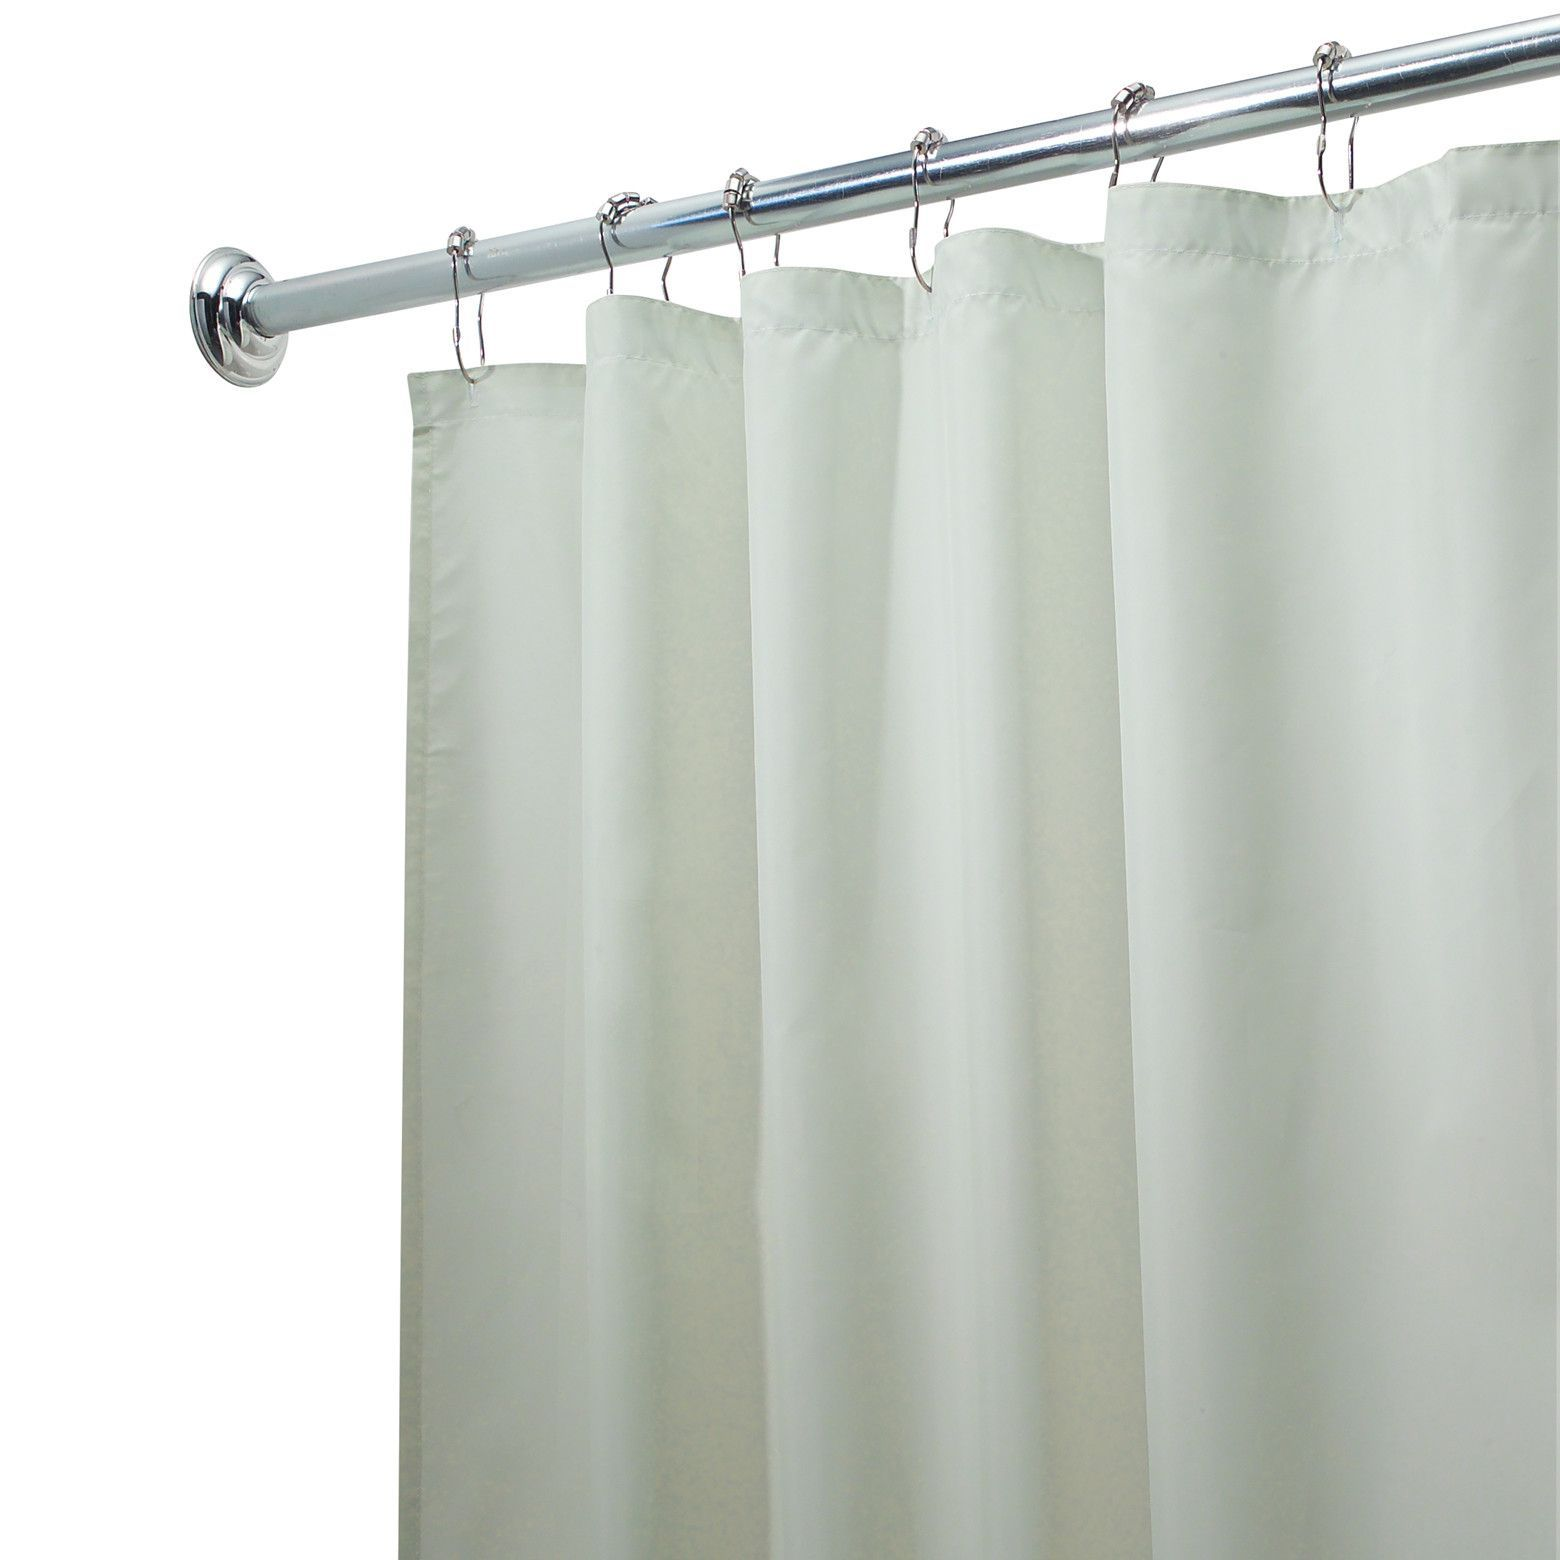 Shower Curtain Liner Fabric Shower Curtains Curtains Shower